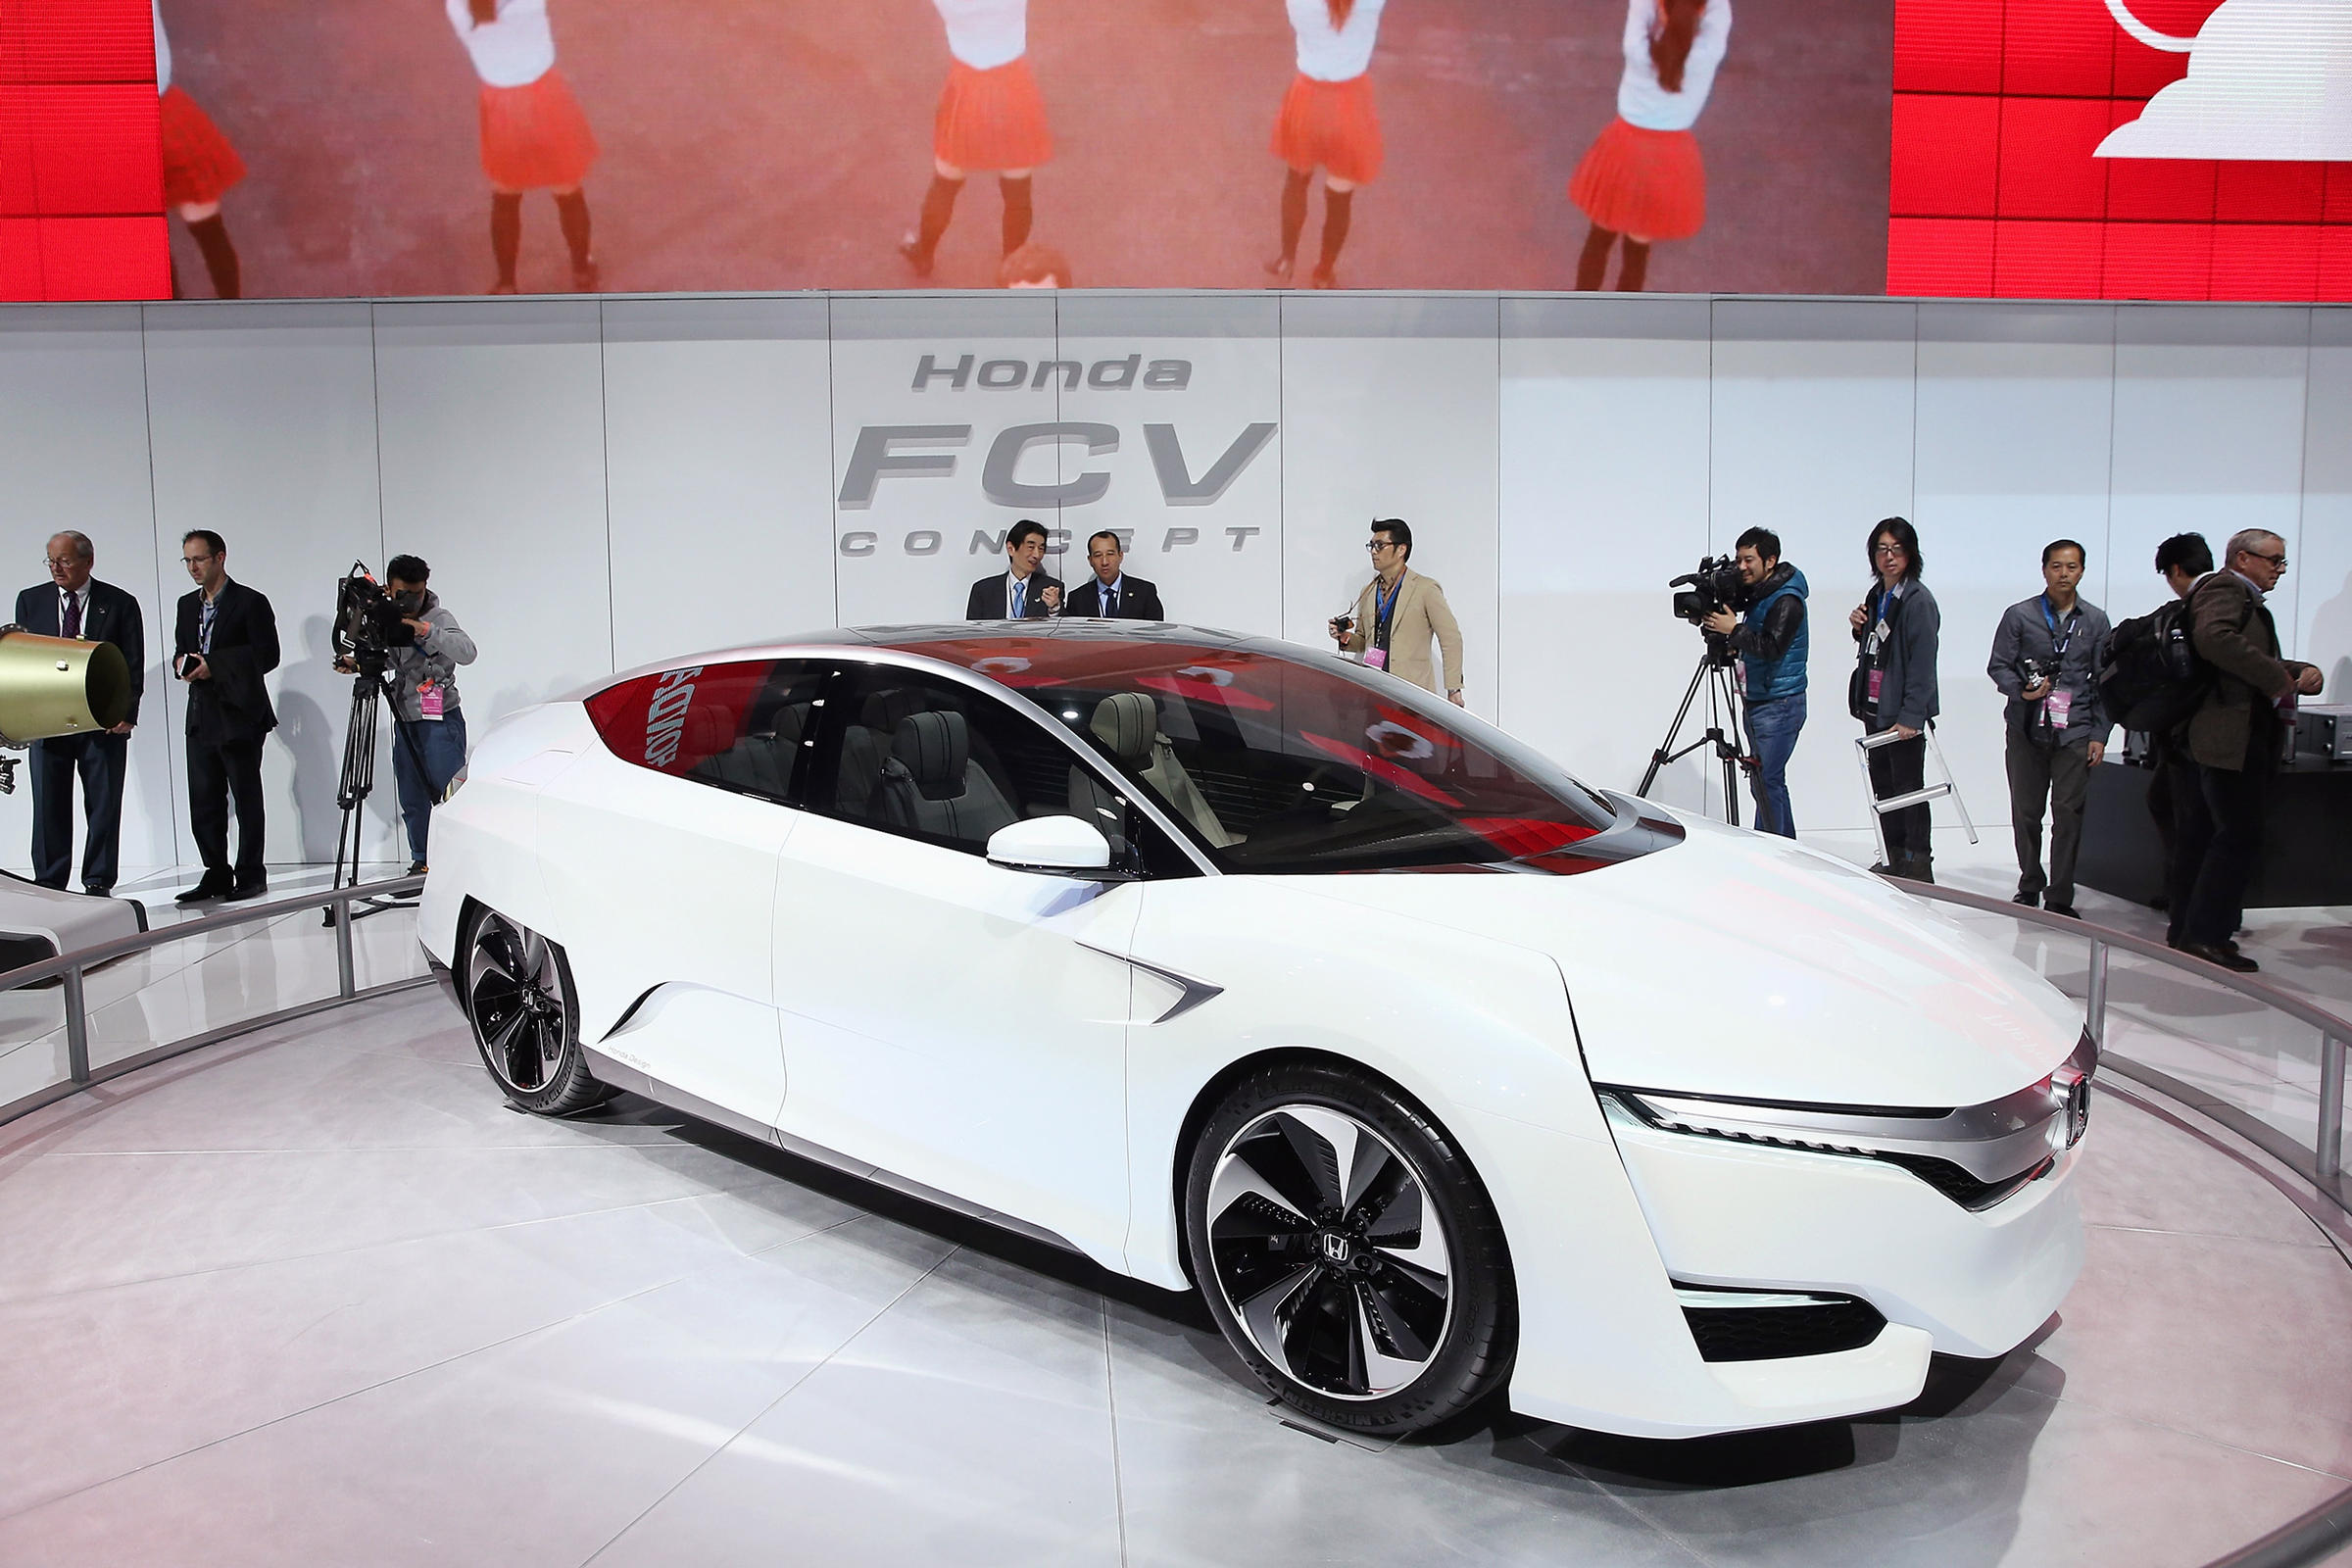 Superbe Guests Look Over The Honda FCV Fuel Cell Powered Concept Car During The  Media Preview.